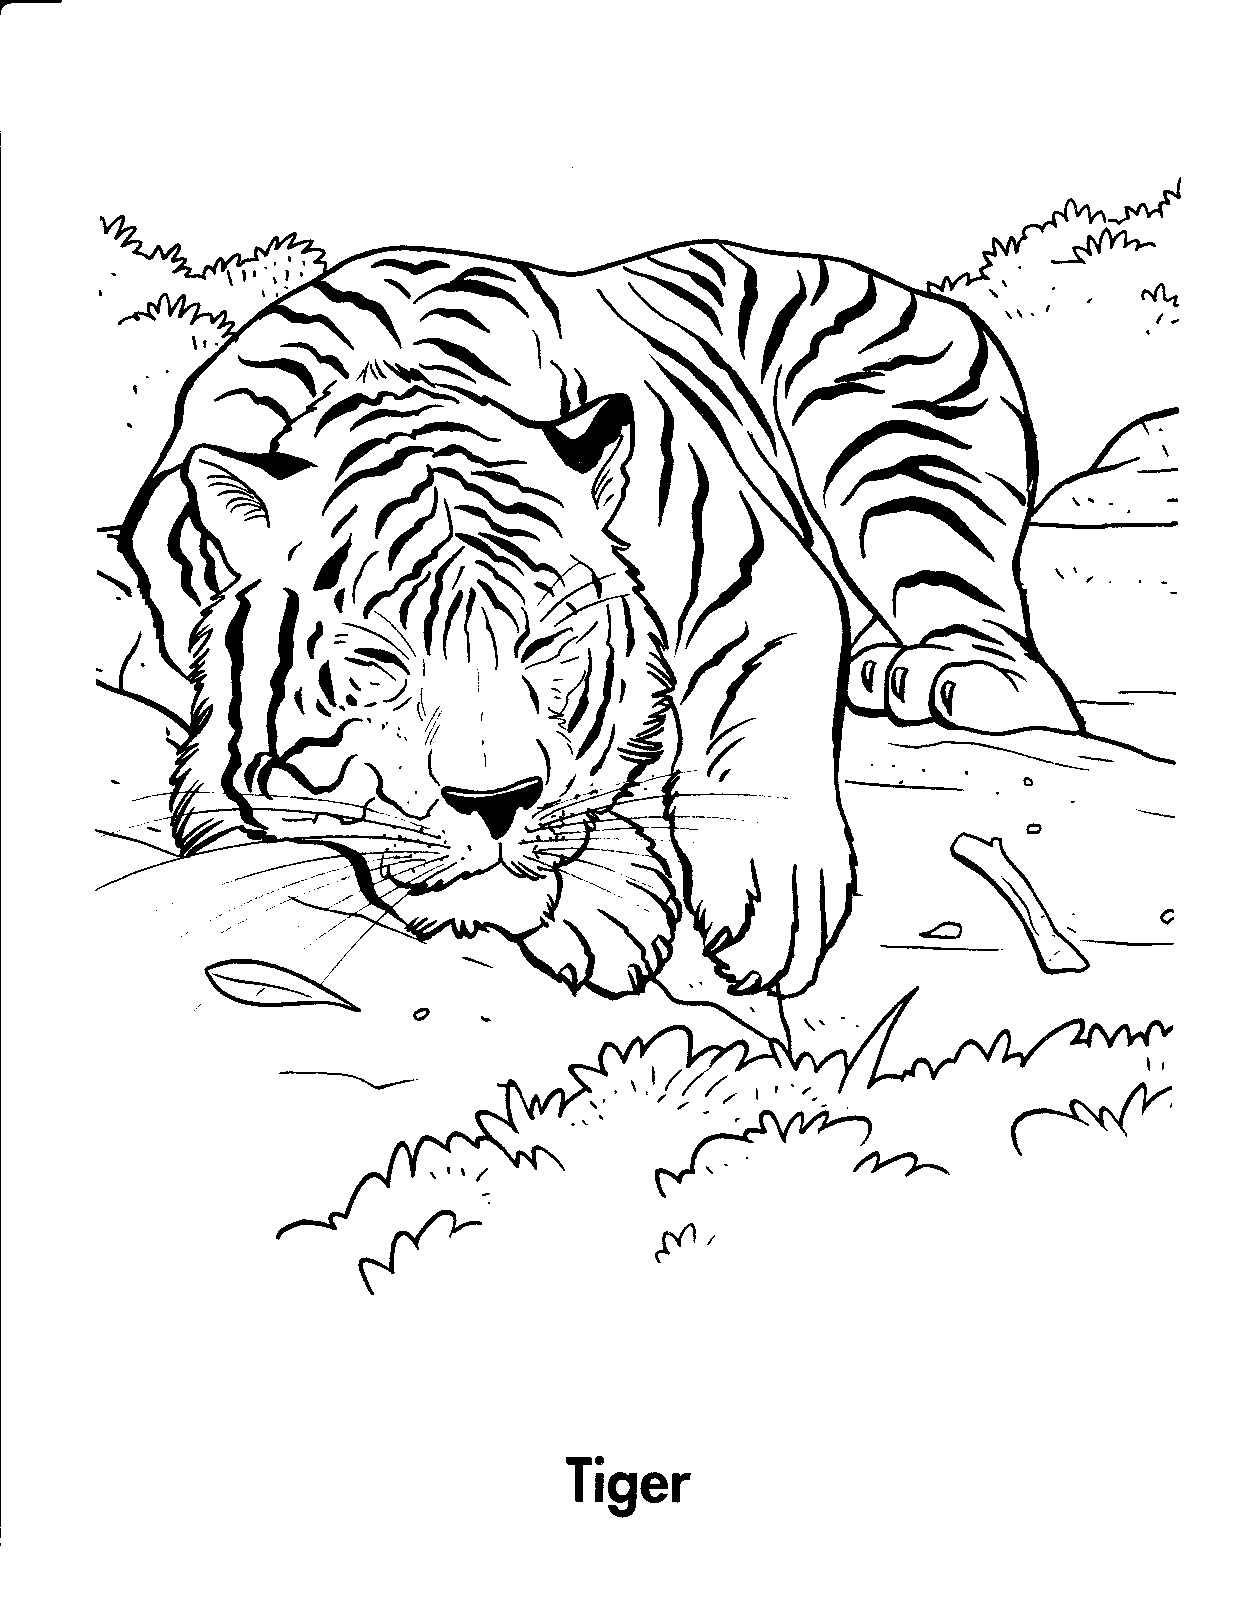 Tiger coloring pages   Animal coloring pages   #32